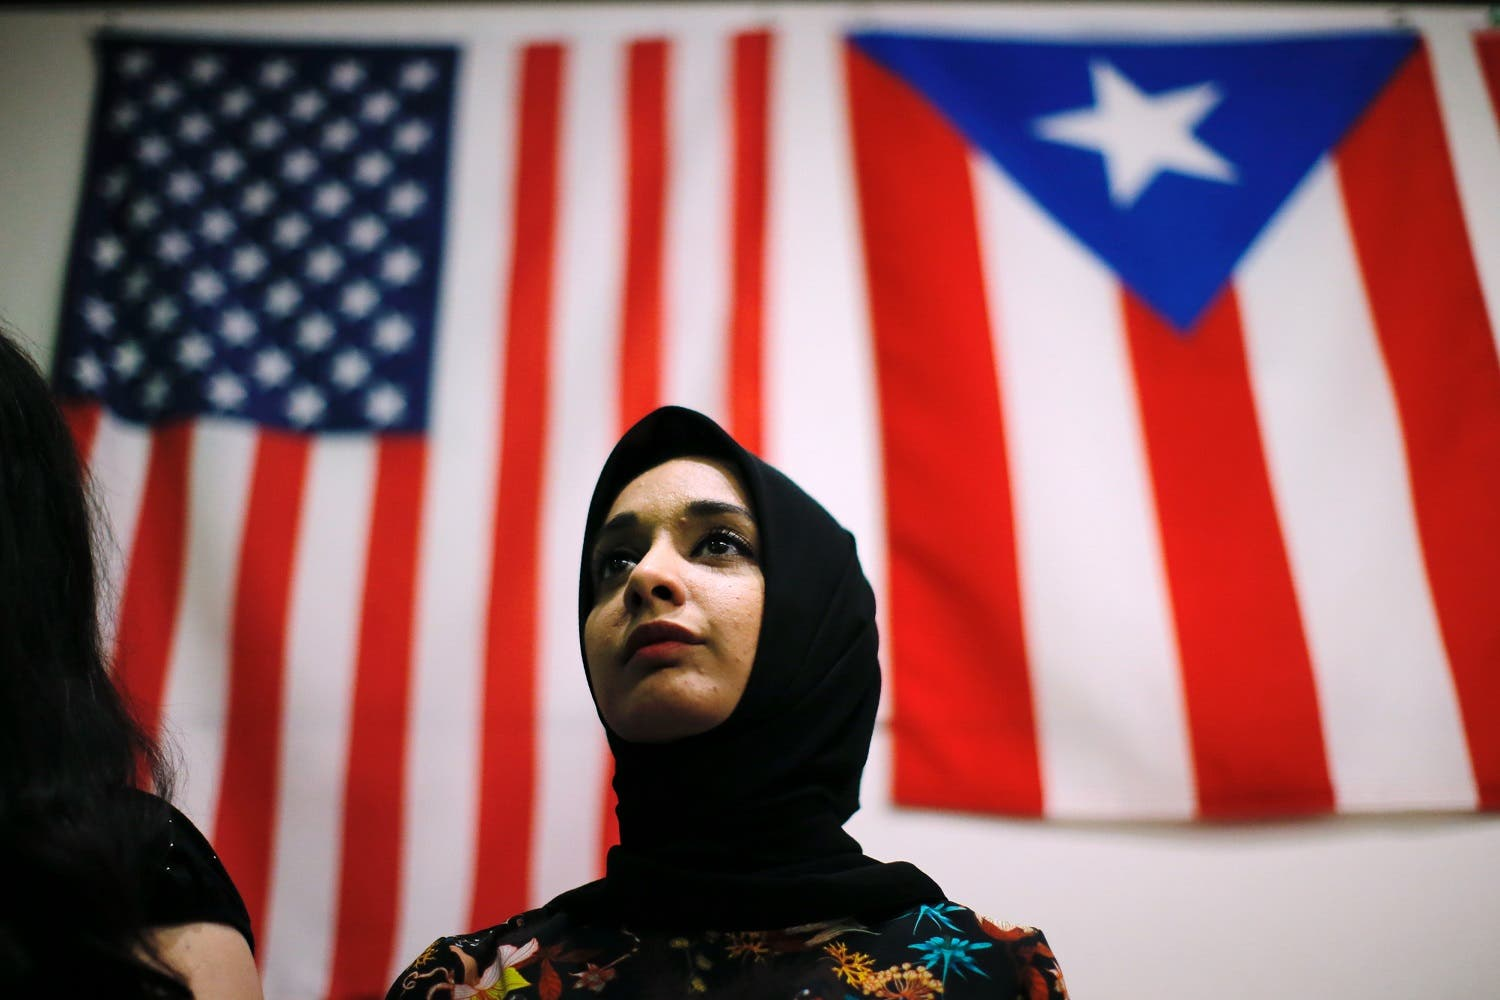 A woman attends a town hall meeting following a rally to protest restrictive guidelines issued by the US on who qualifies as a close familial relationship under the Supreme Court order on the Muslim and refugee ban at Union Square on June 29, 2017, in New York. (AFP)